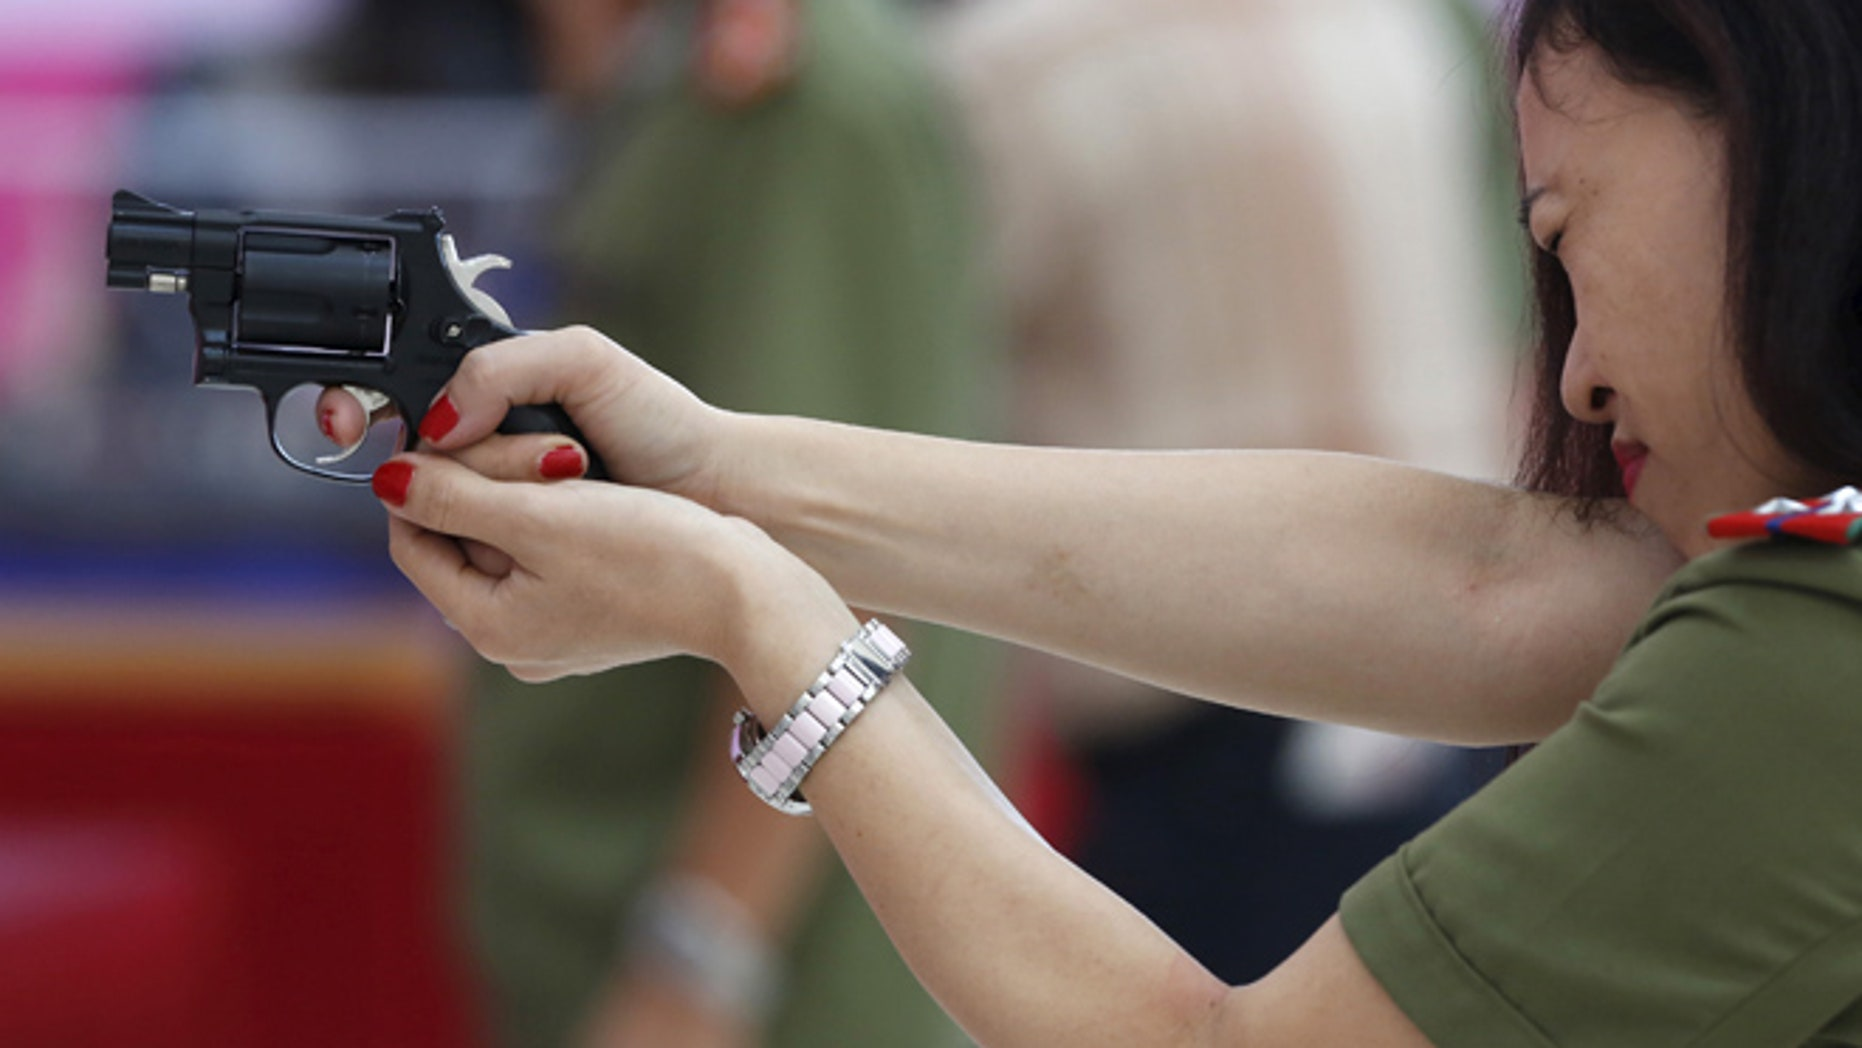 A policewoman demonstrates a Vietnamese-made pistol during celebrations to commemorate the 70th anniversary of the establishment of the Vietnam Public Security police force at the National Convention Center in Hanoi August 18, 2015. The Vietnam Police force was founded on August 19, 1945, the day of the anti-colonial people's uprising known as the August Revolution. REUTERS/Kham - RTX1OLM6